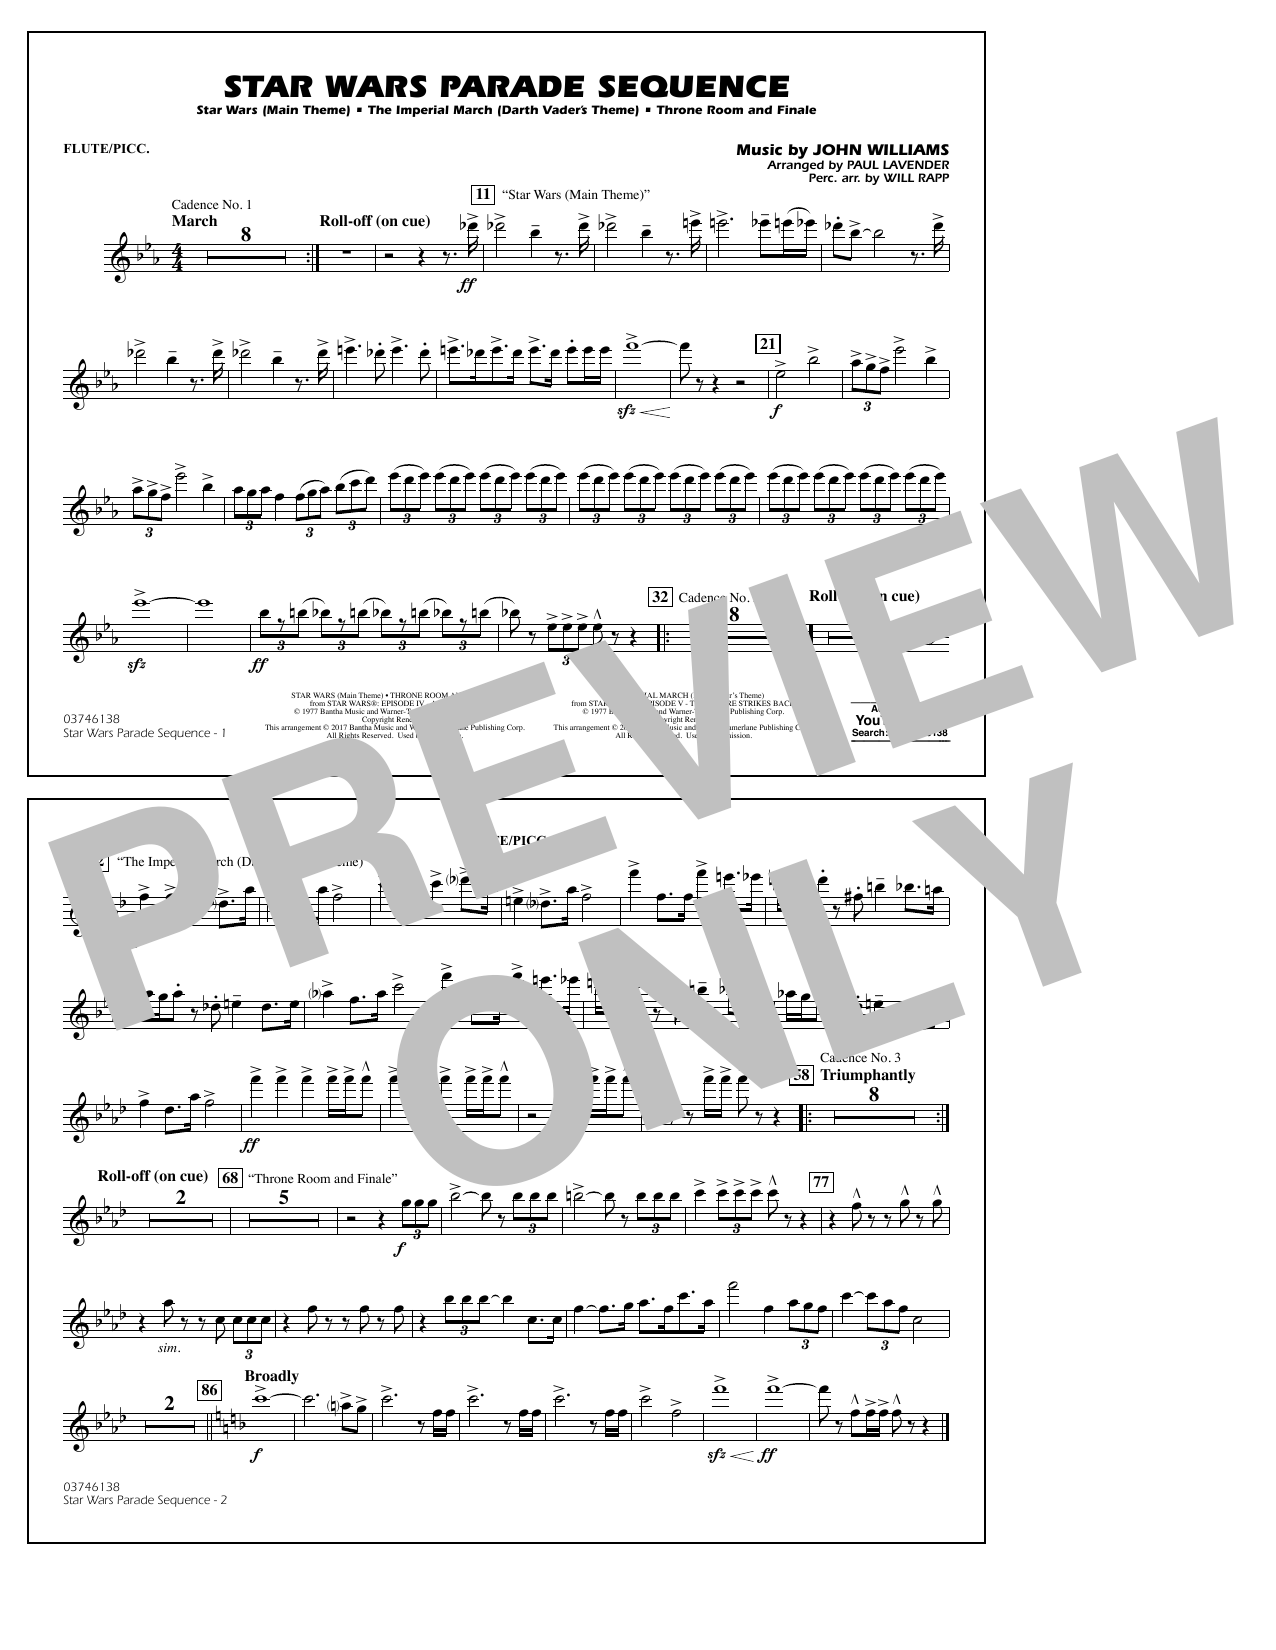 Paul Lavender Star Wars Parade Sequence - Flute/Piccolo sheet music notes and chords